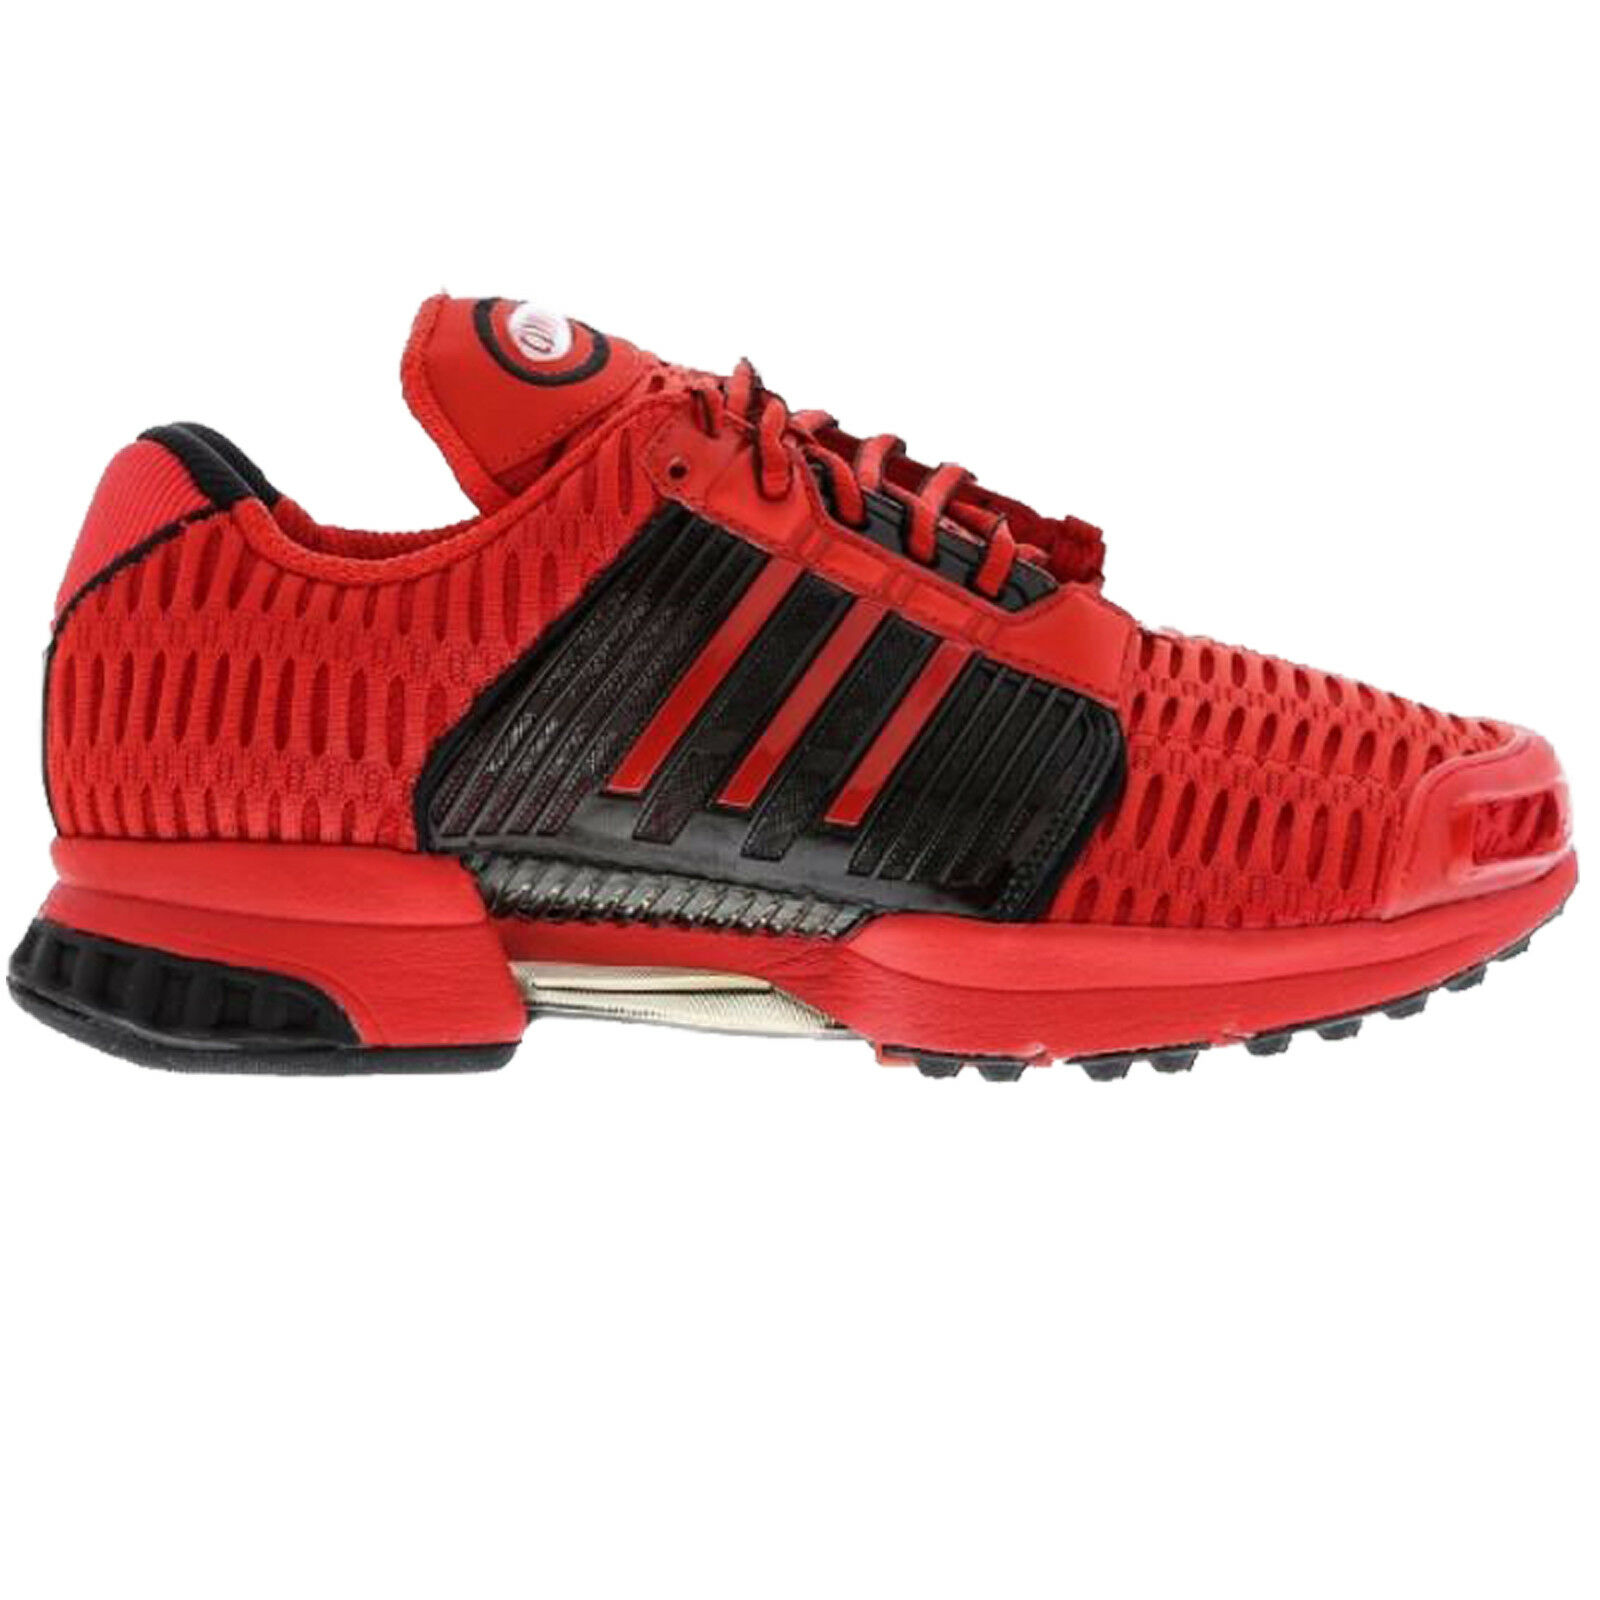 adidas adidas adidas Climacool 1 Mens Trainers~Originals~to 13.5~Unisex~8 Colours 222cc4